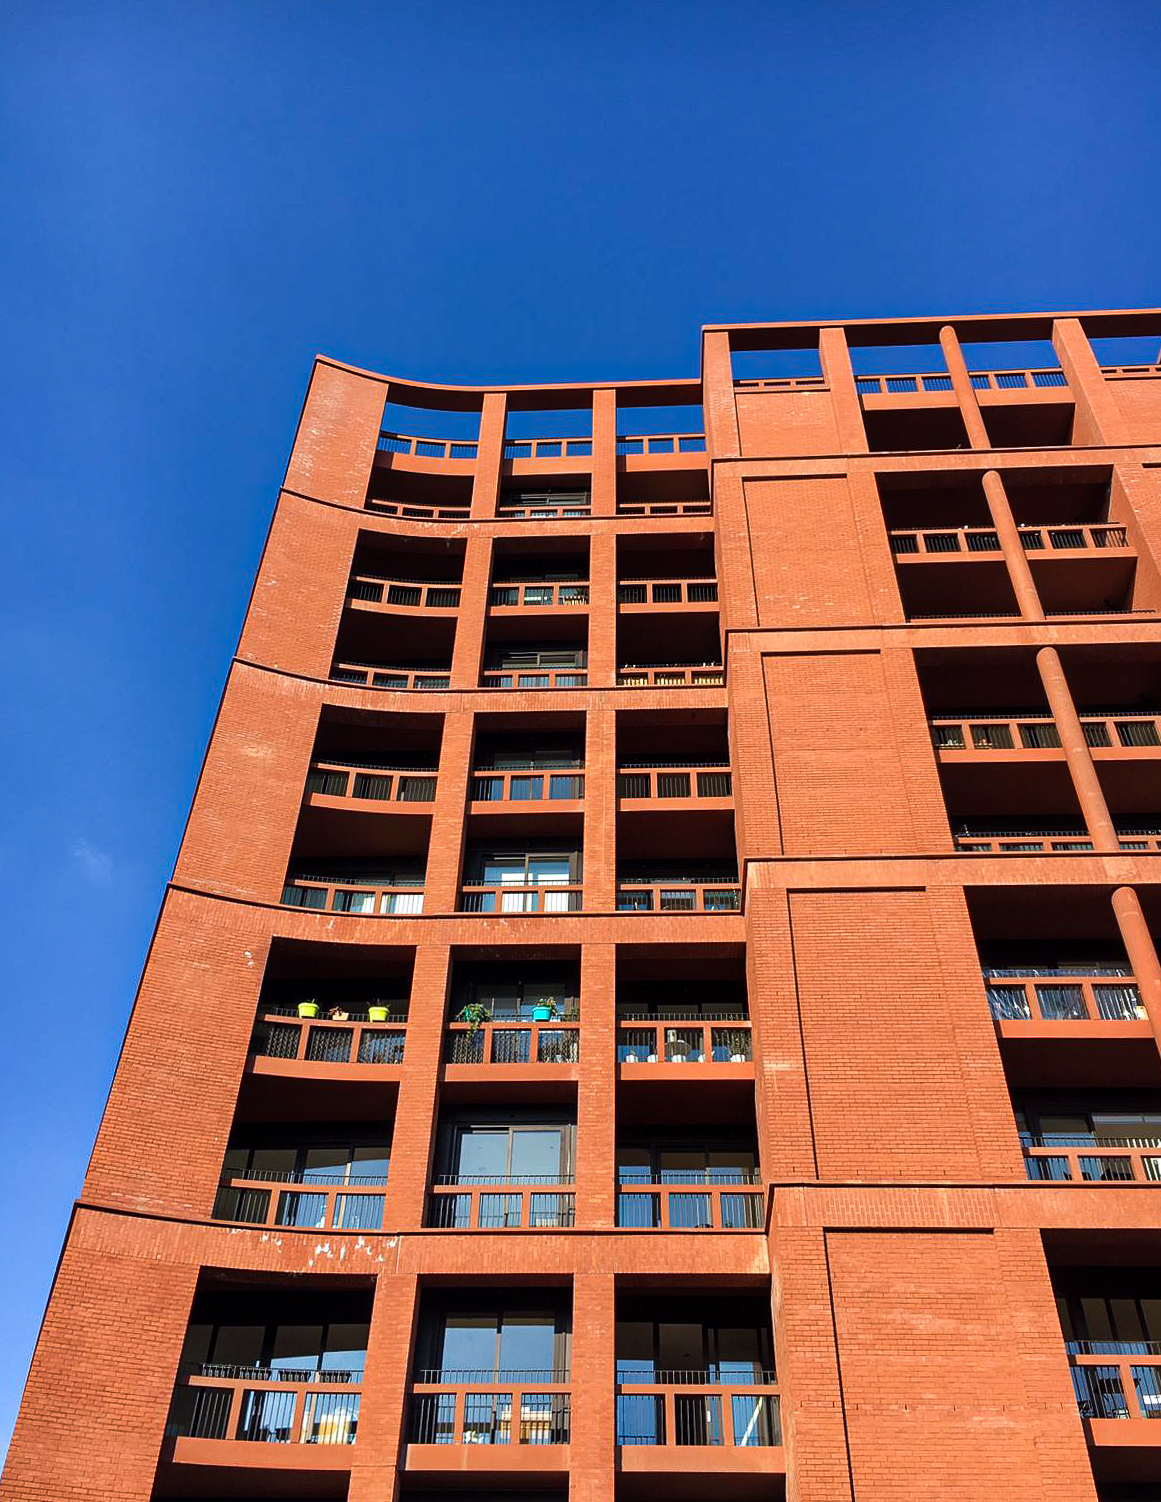 A red coloured building showing balconies